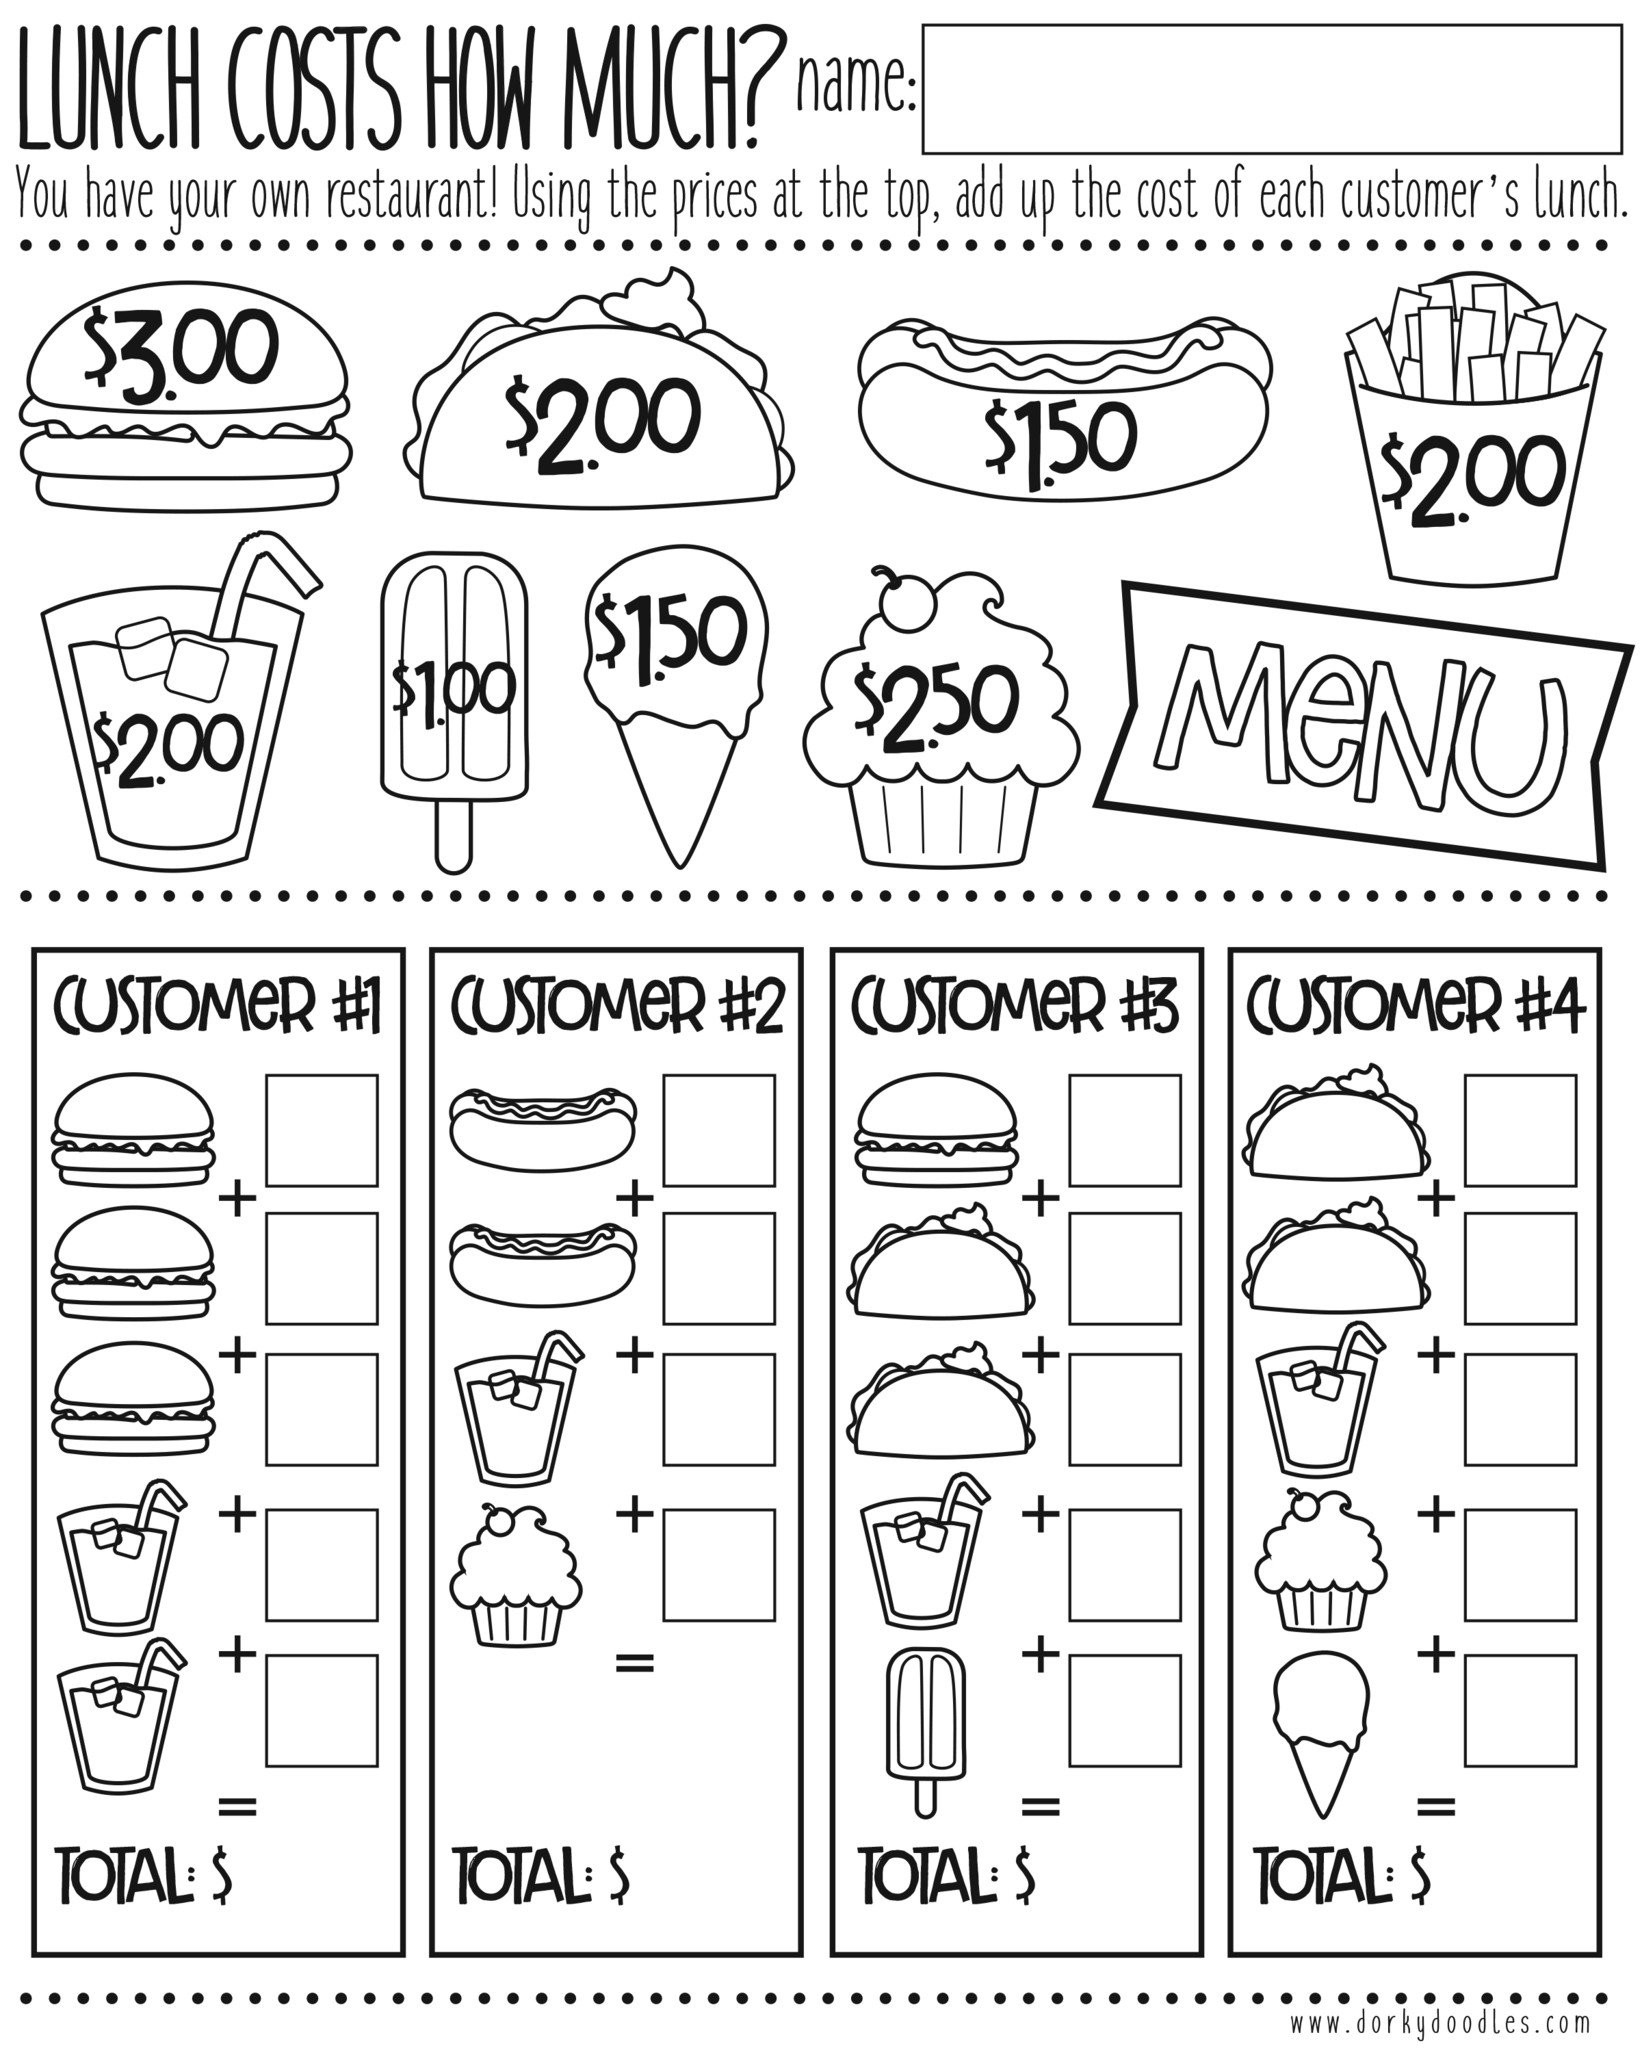 Free Menu Math Worksheets Money Math Practice How Much Does Lunch Cost – Dorky Doodles